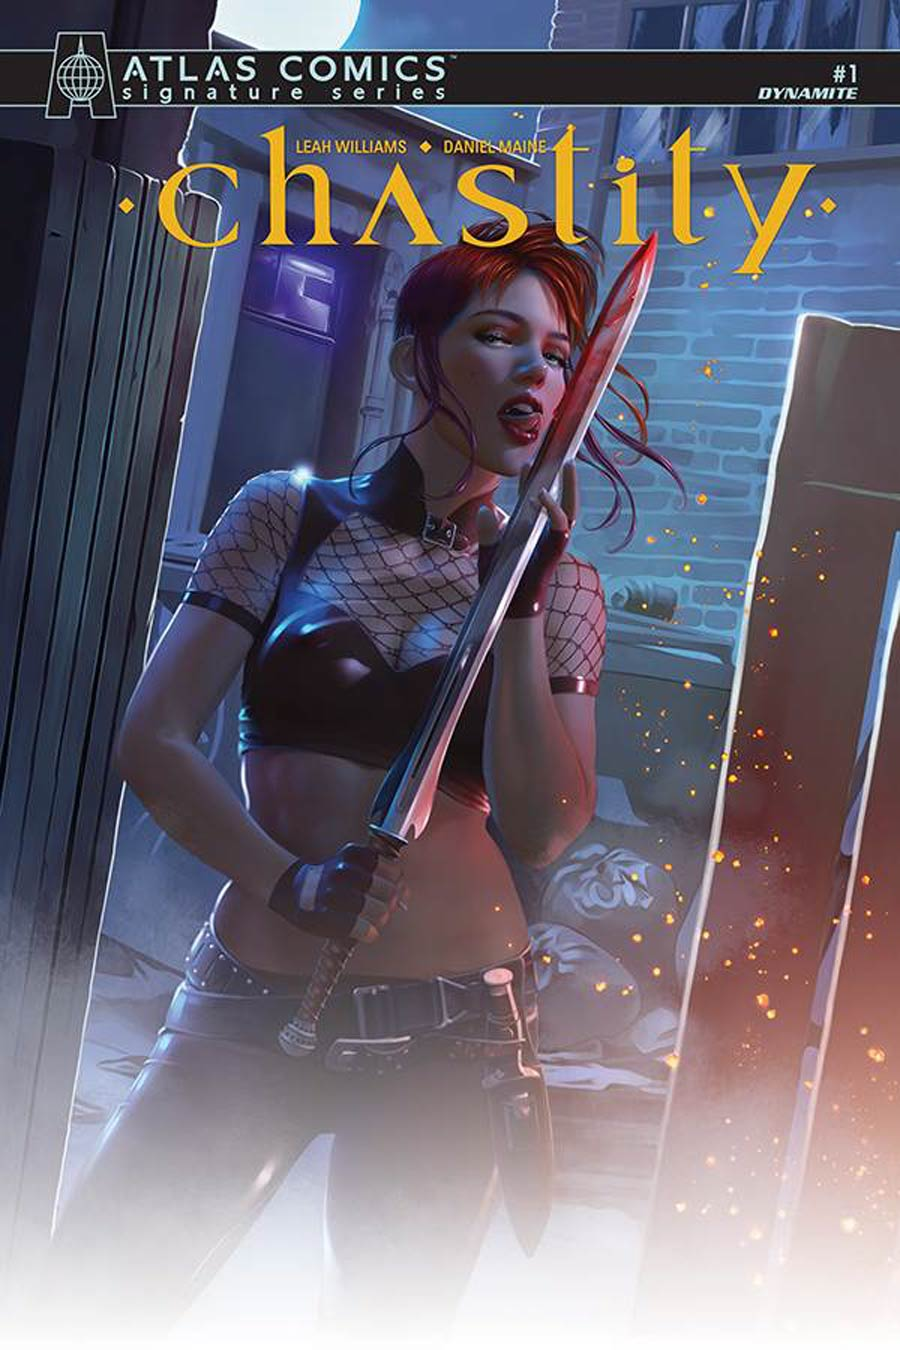 Chastity Vol 2 #1 Cover N Atlas Comics Signature Series Signed By Leah Williams